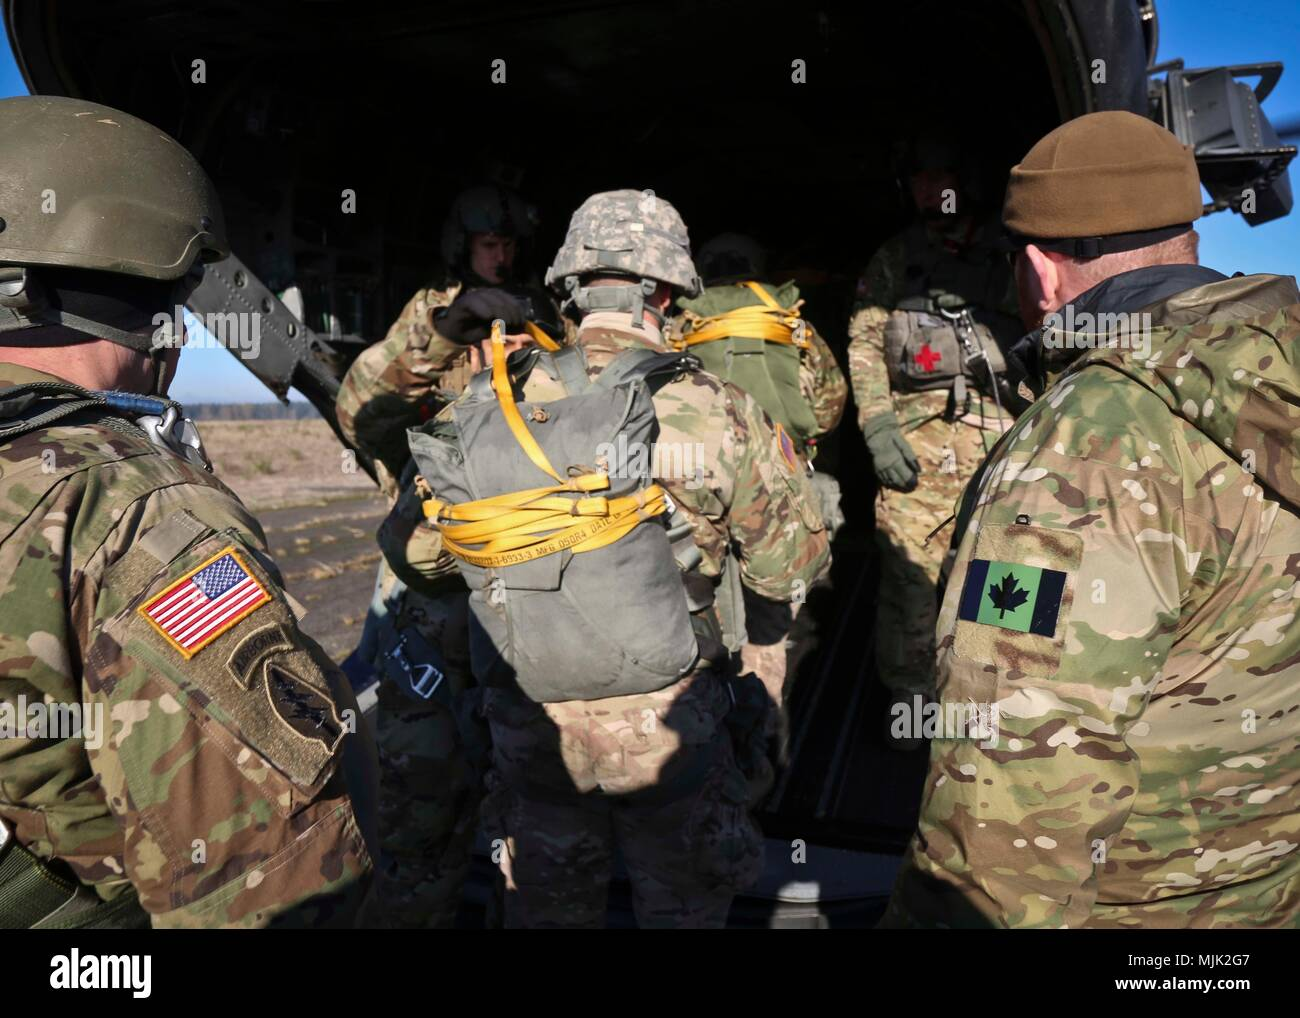 Members of the 1st Special Forces Group (Airborne) conduct an Airborne operation with the Canadian Special Operations Regiment (CSOR) during Menton week at Joint Base Lewis-McChord, Wa., Dec 6, 2017. After the jump, Soldiers from 1SFG (A), Filipino and Canadian paratroopers conducted a ceremony where they exchanged their countries' jump wings with one another. Stock Photo